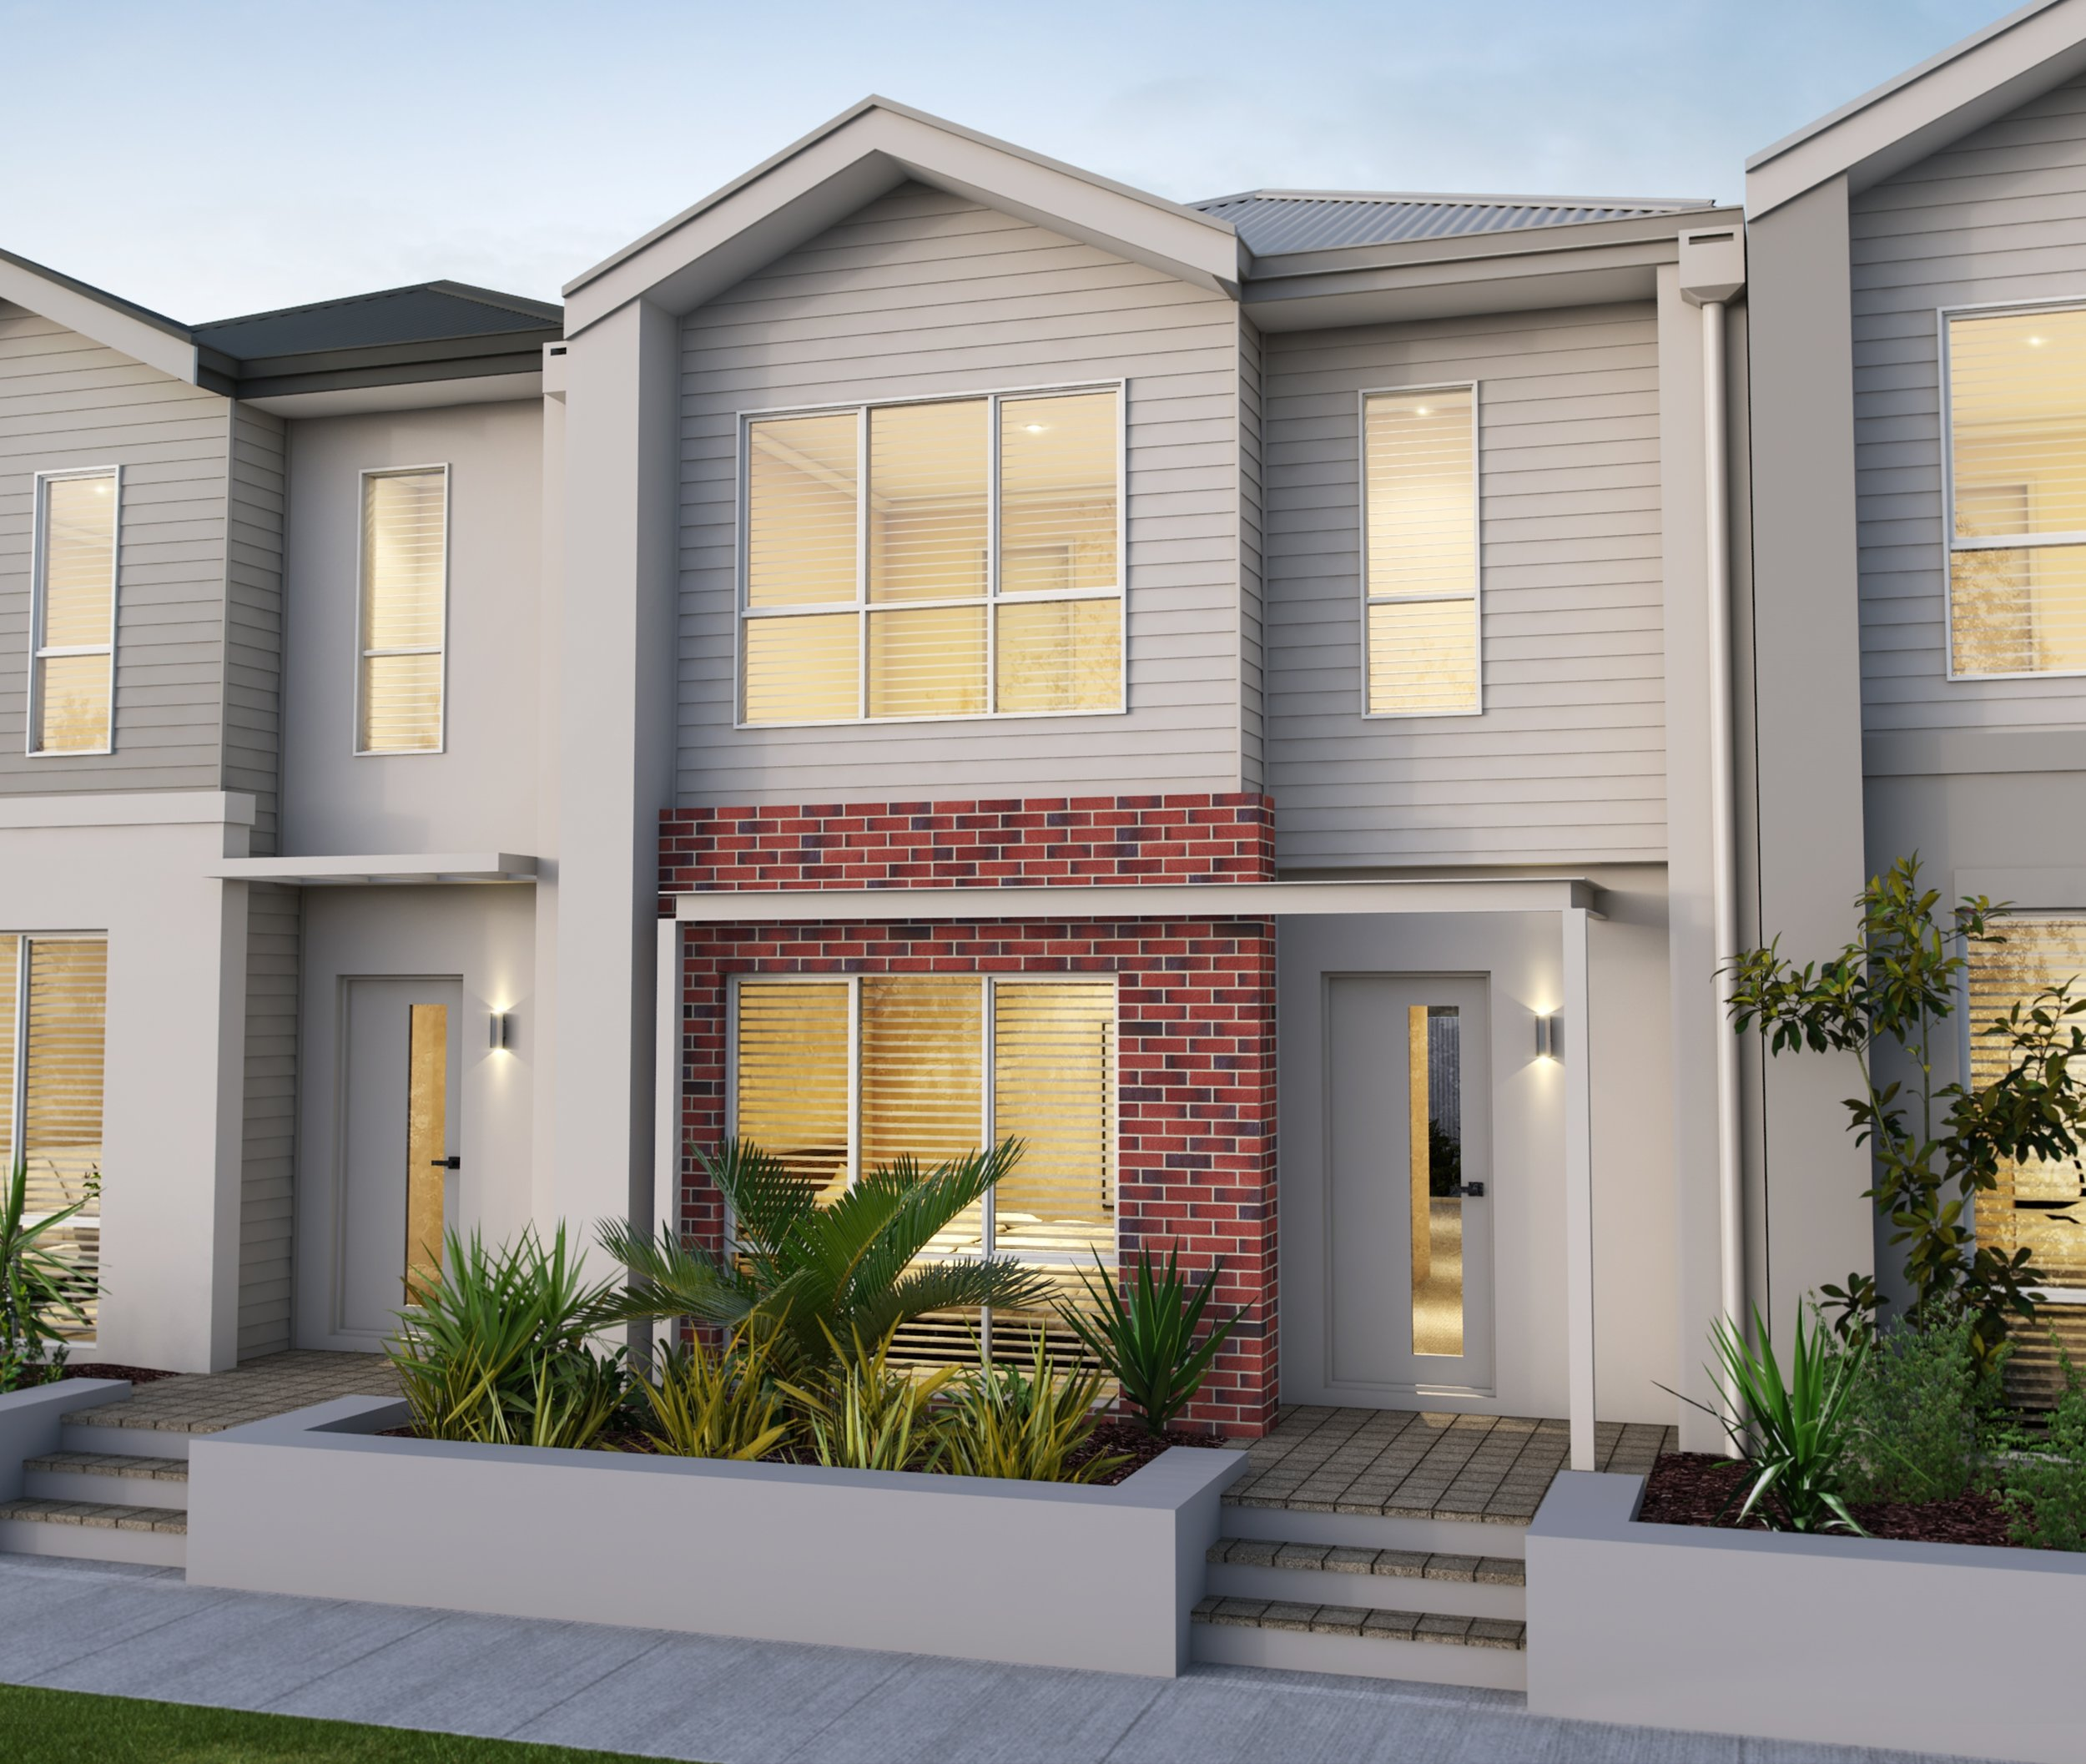 LOT 125 - FROM $451,250*4 Bed + 2 Bath + 2 Car